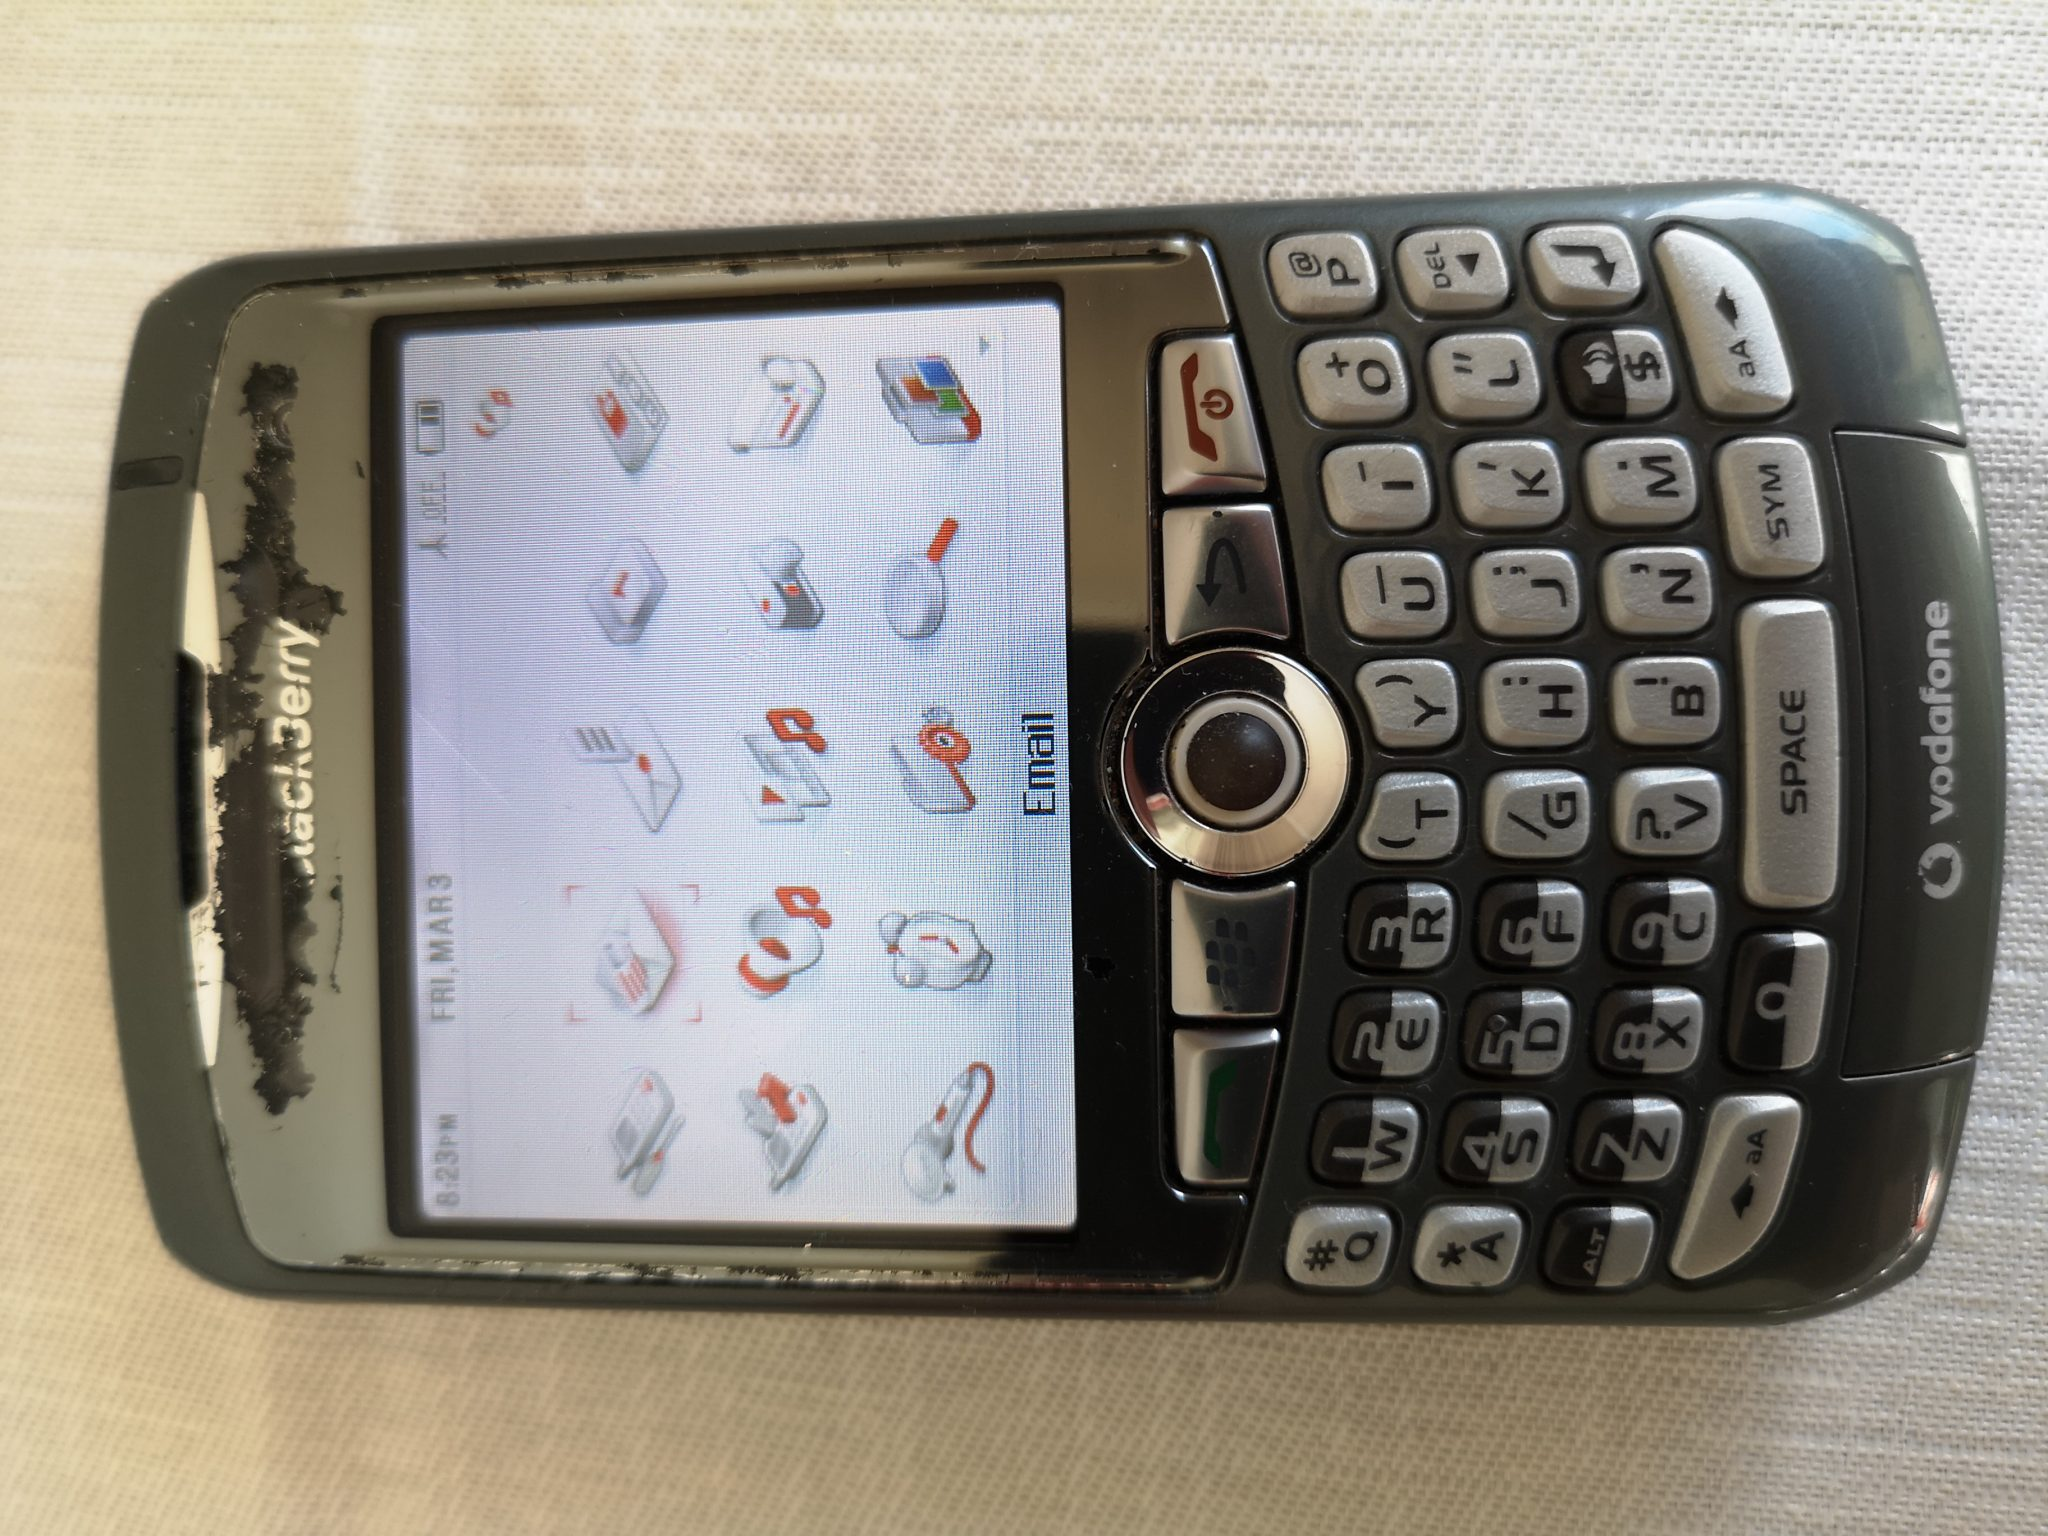 Blackberry Curve 8310 Review - Retro Mobile Phone with Rollerball